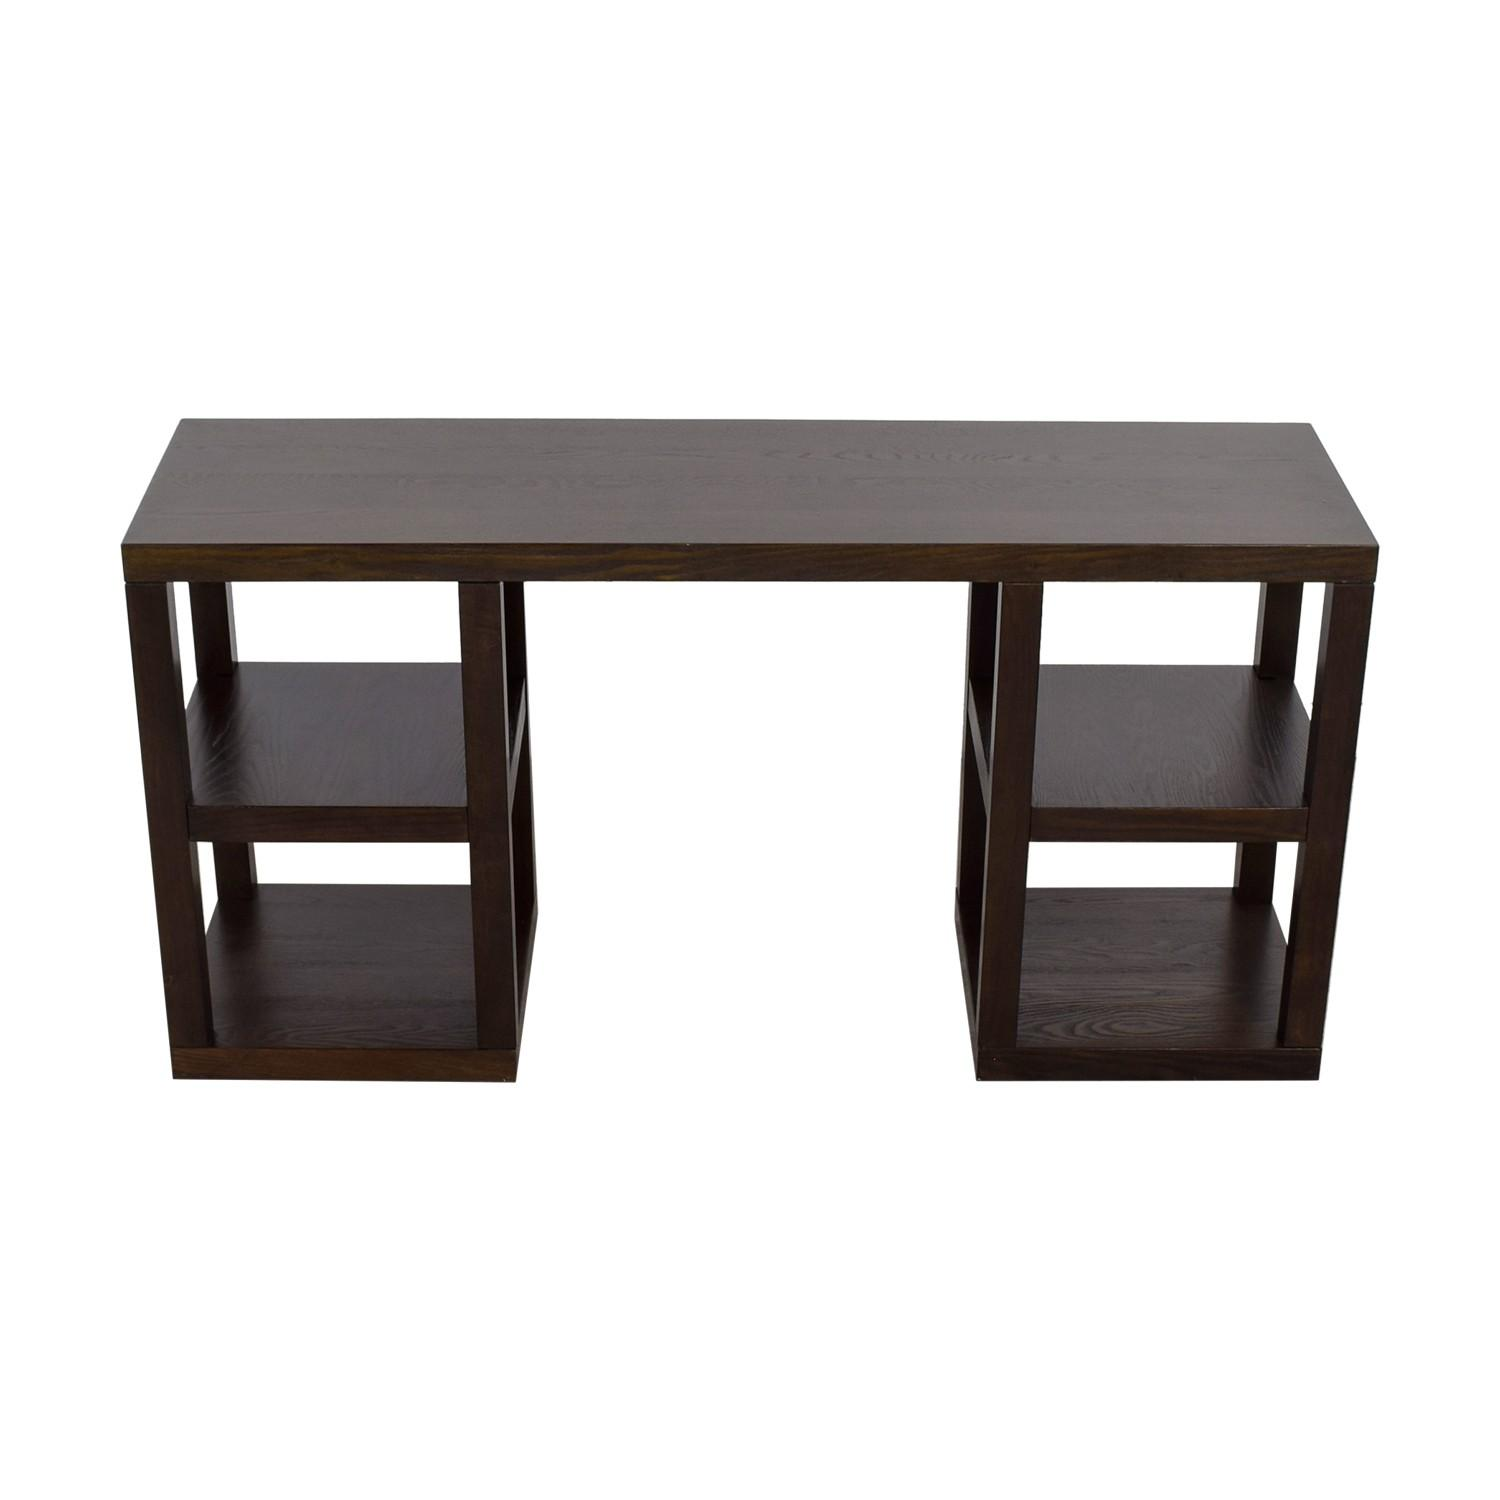 West Elm 2 X 2 Console Desk in Chocolate - image-6